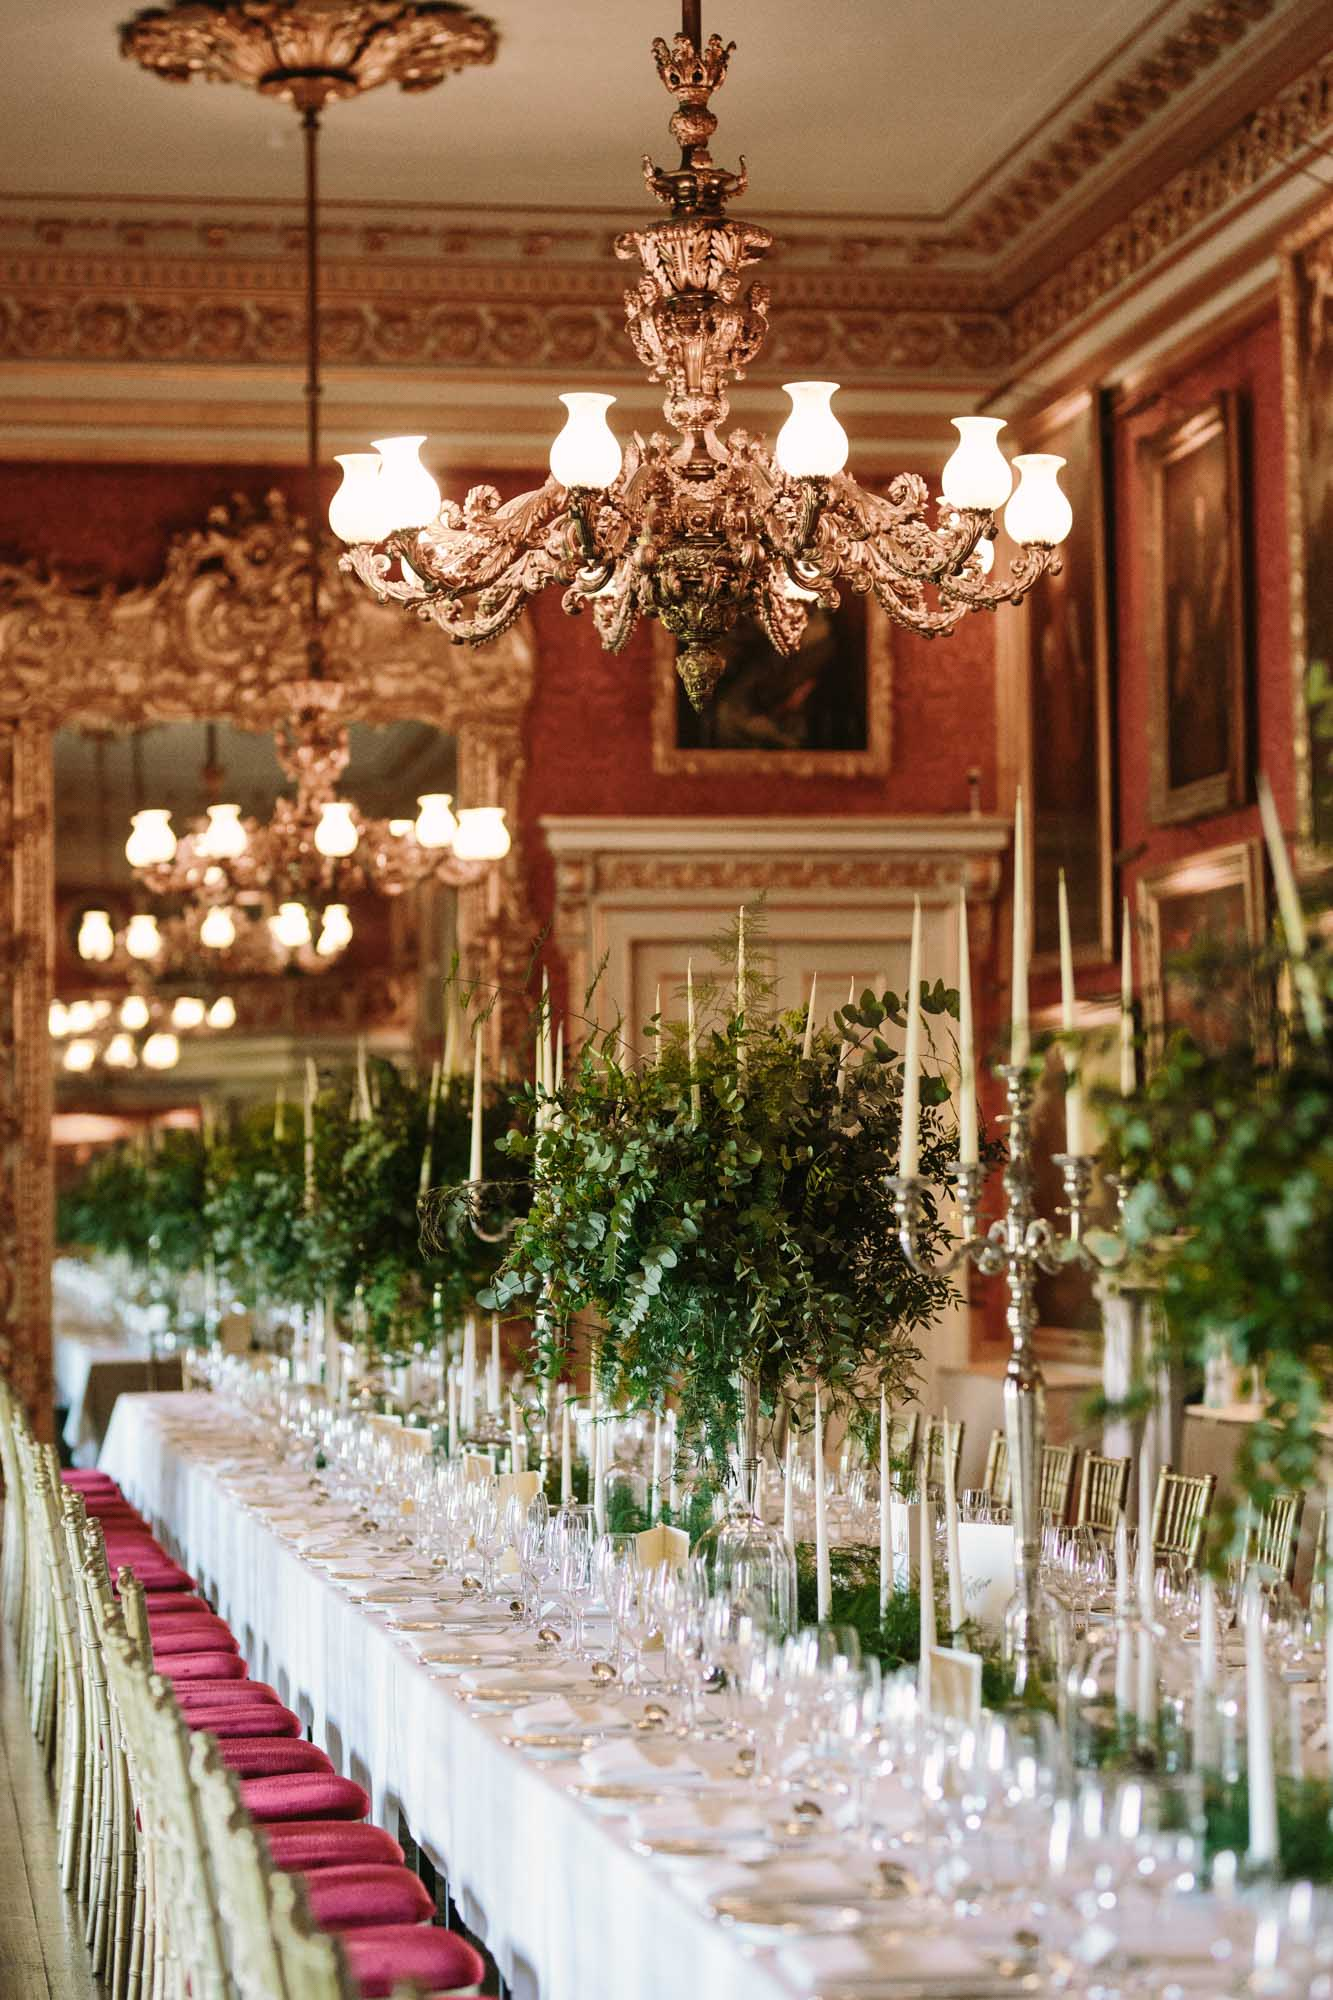 Long banqueting table set up for wedding breakfast at Goodwood House